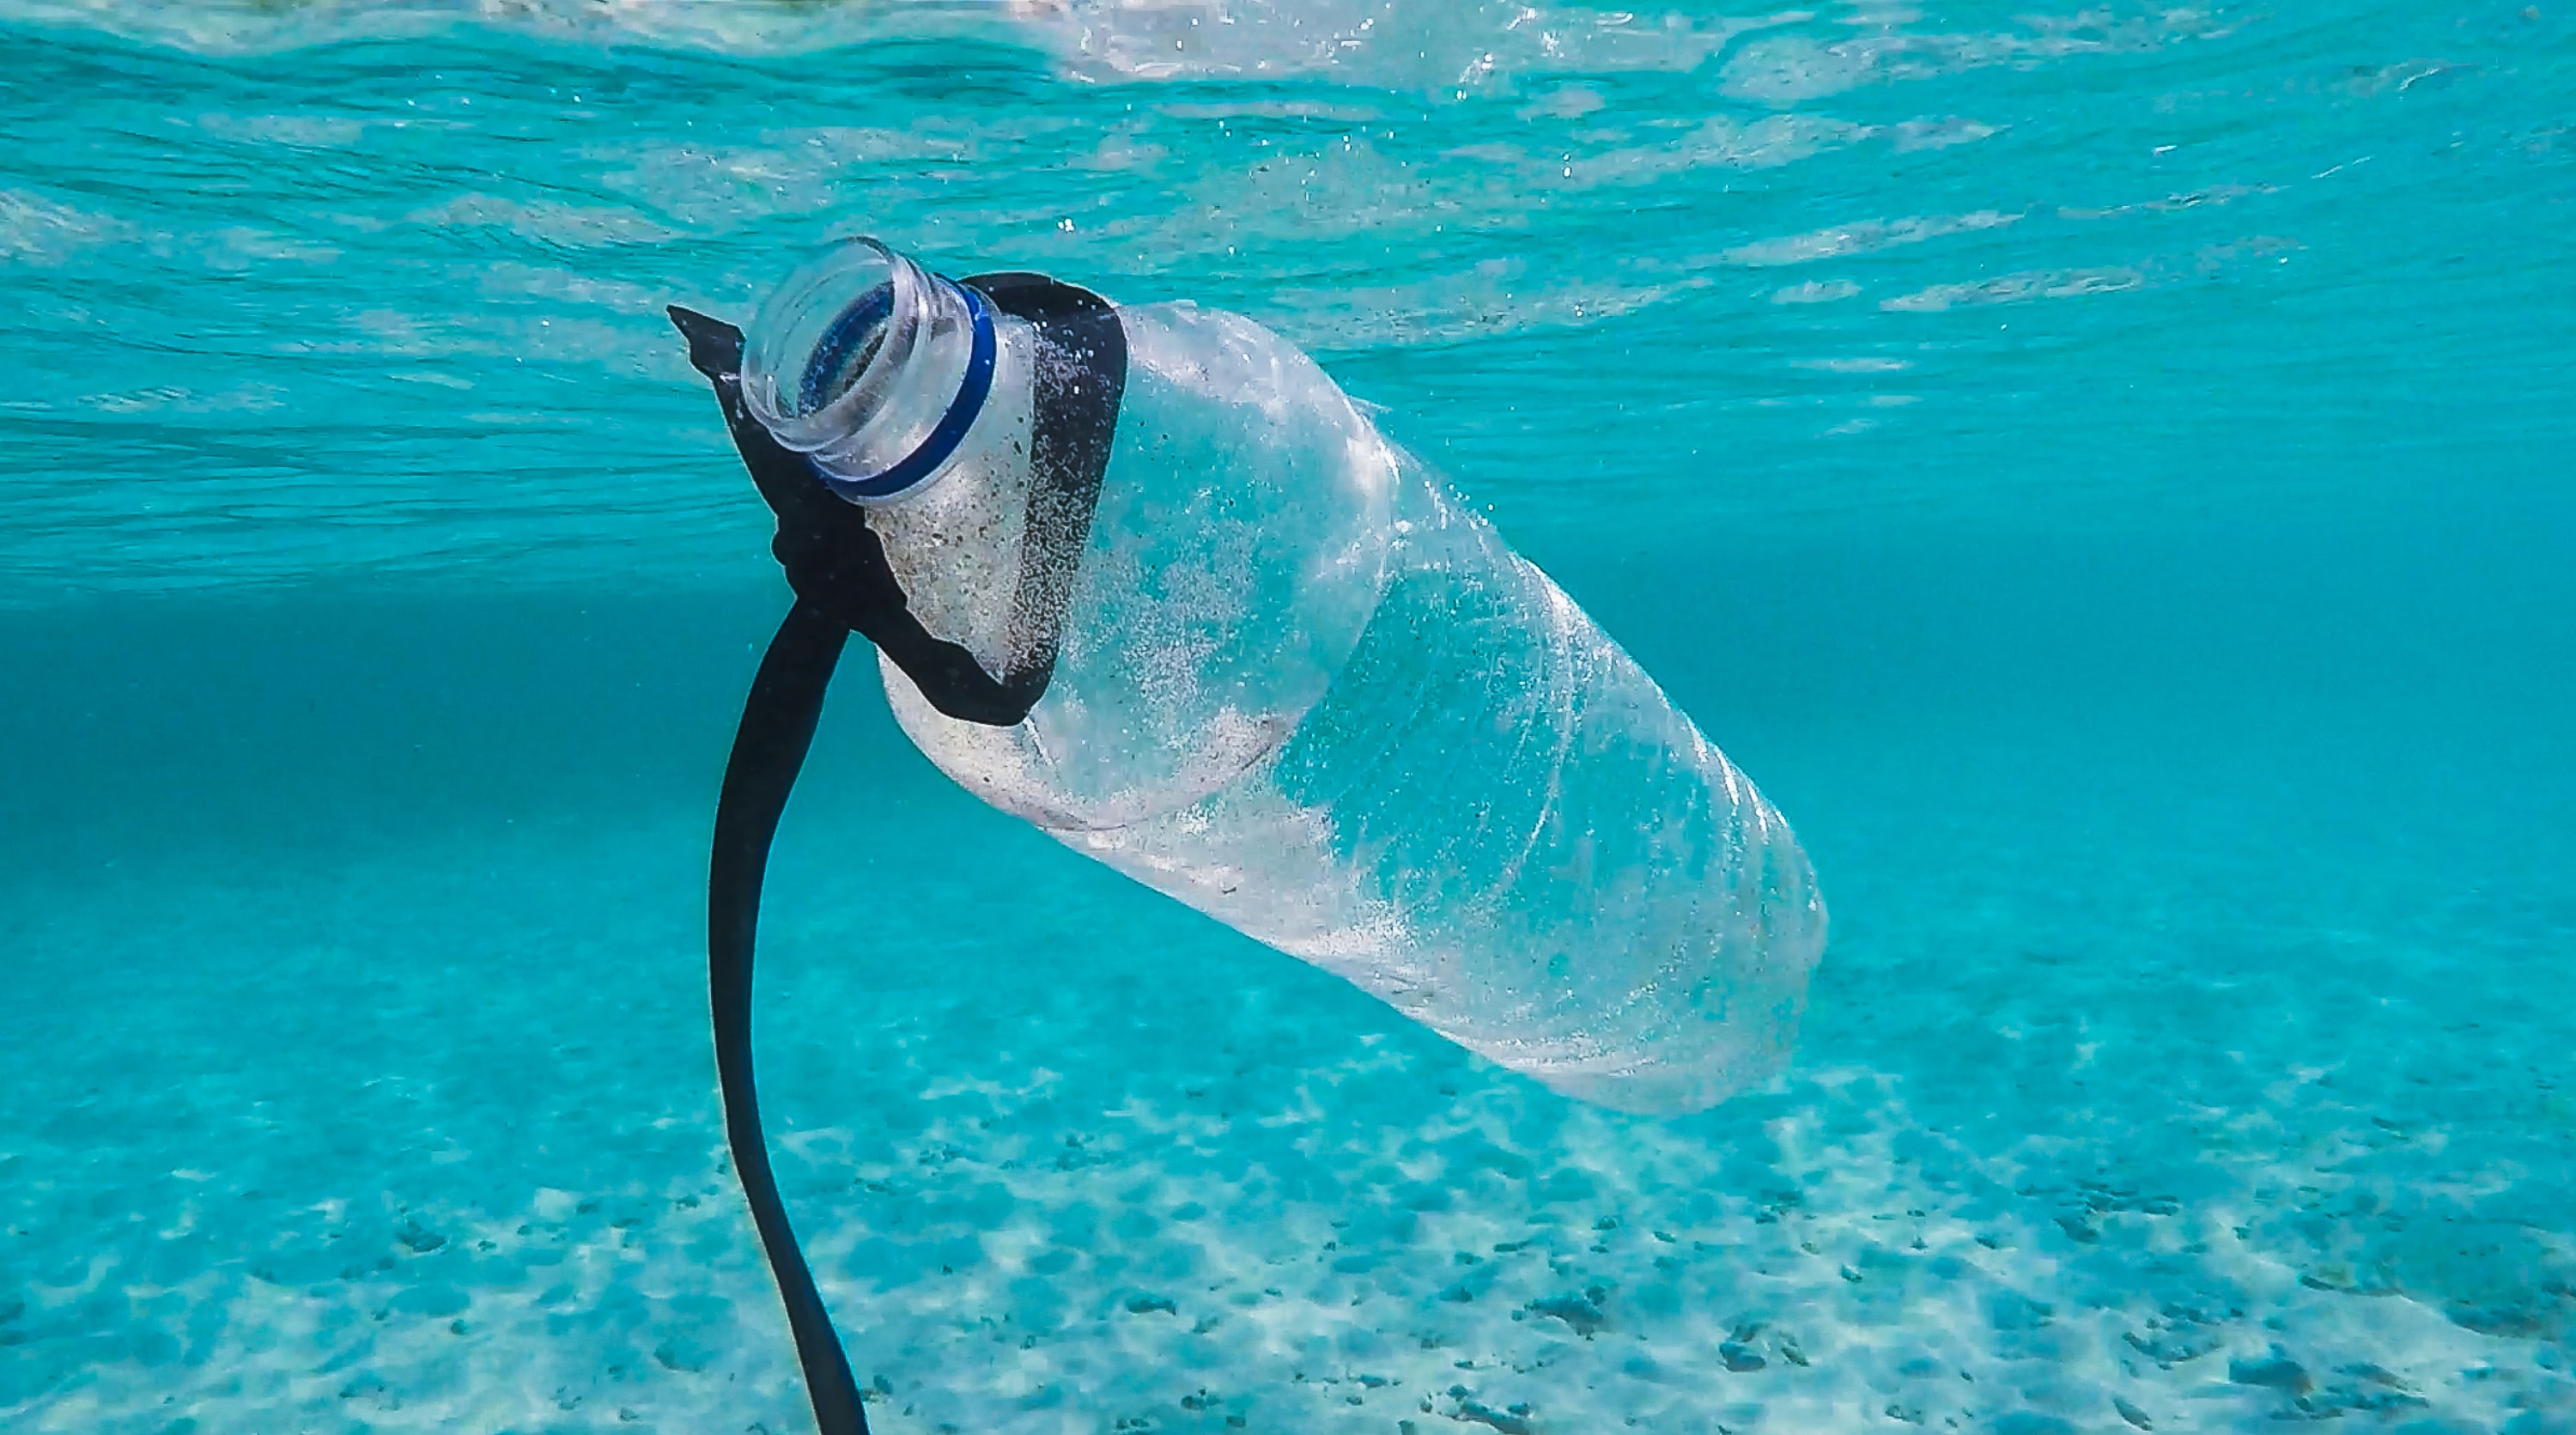 Plastic bottle in the ocean